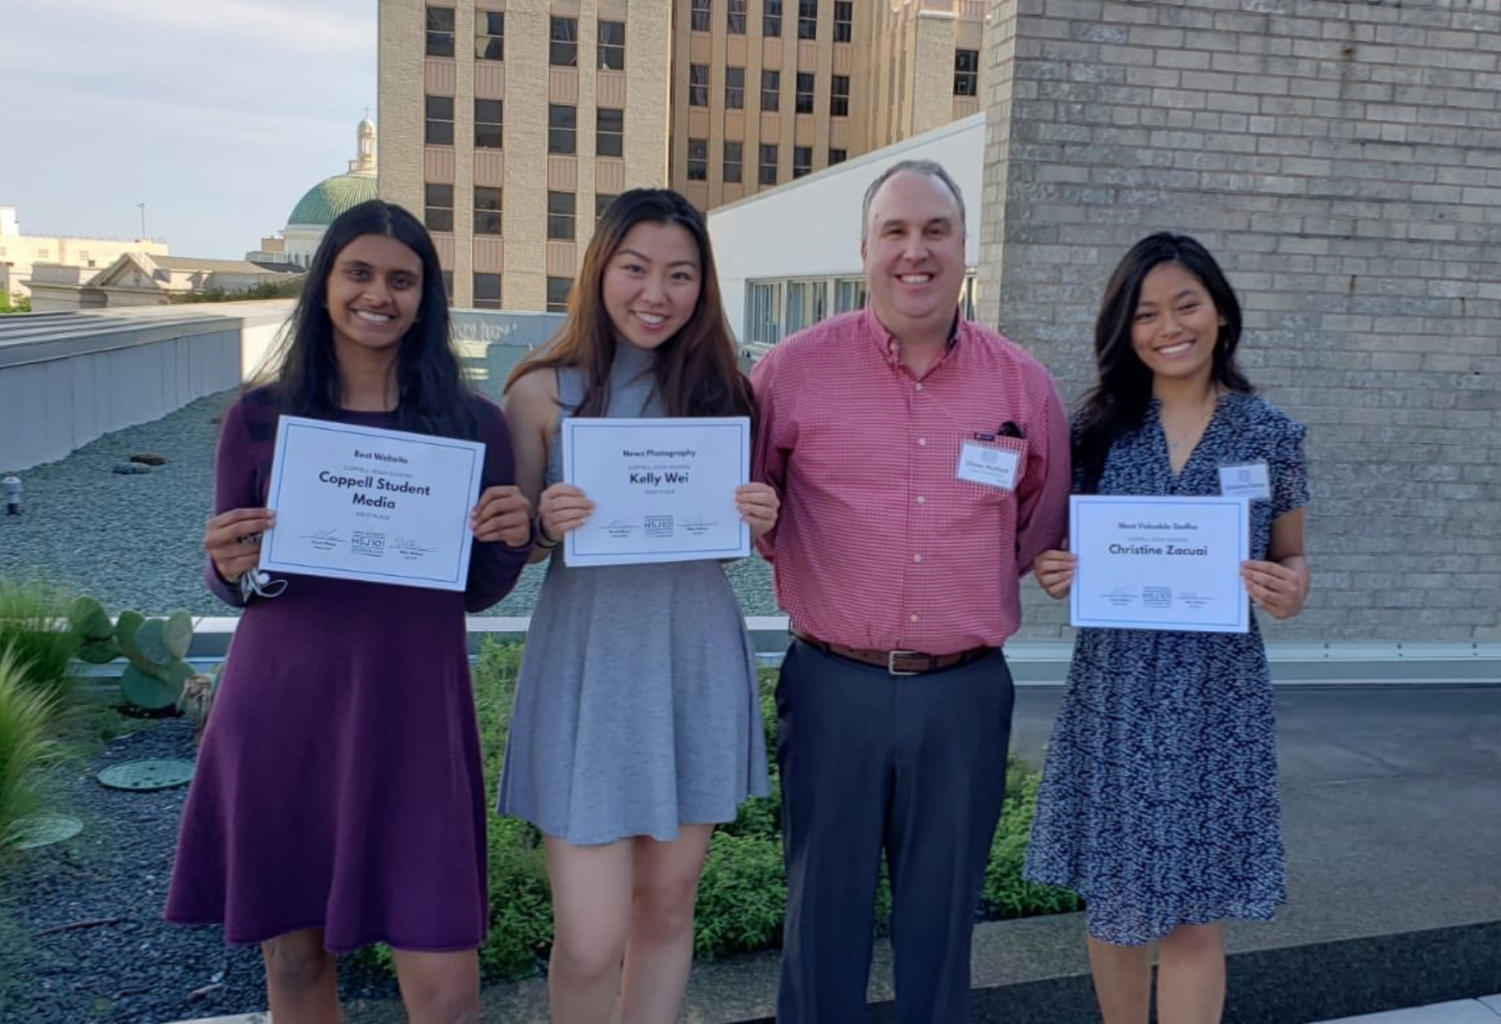 On Thursday, The Sidekick copy editor Pramika Kadari, editor-in-chief Kelly Wei, adviser Chase Wofford and executive news editor Christine Zacuai represented the program at The Dallas Morning News at the 28th annual The Dallas Morning News High School Journalism Day. The event allowed students across North Texas to win awards and gain recognition for their work.